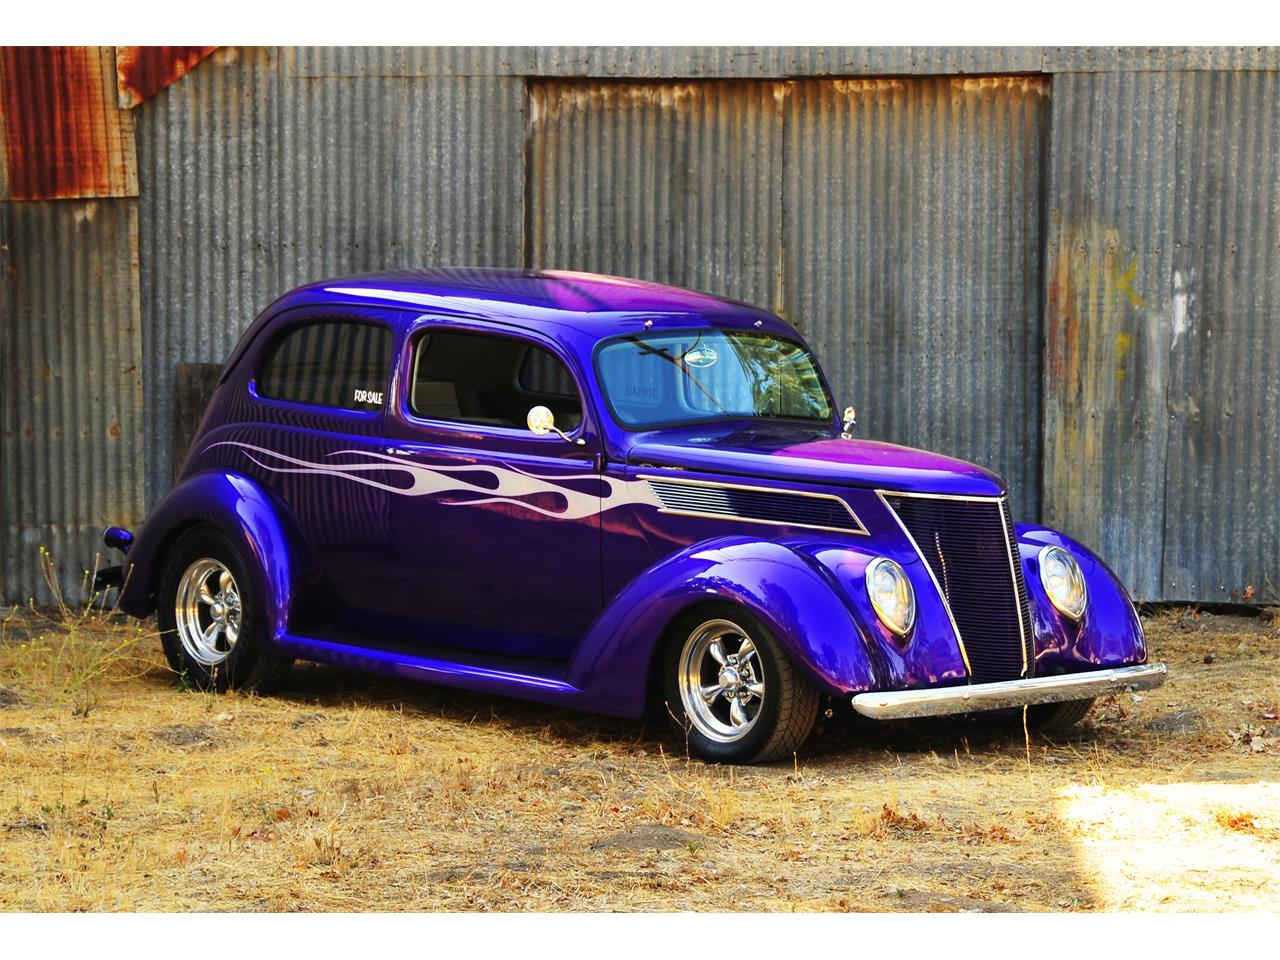 1937 ford sedan for sale classiccars cc 931095 1937 Ford 4 Door large picture of 37 sedan jyfr